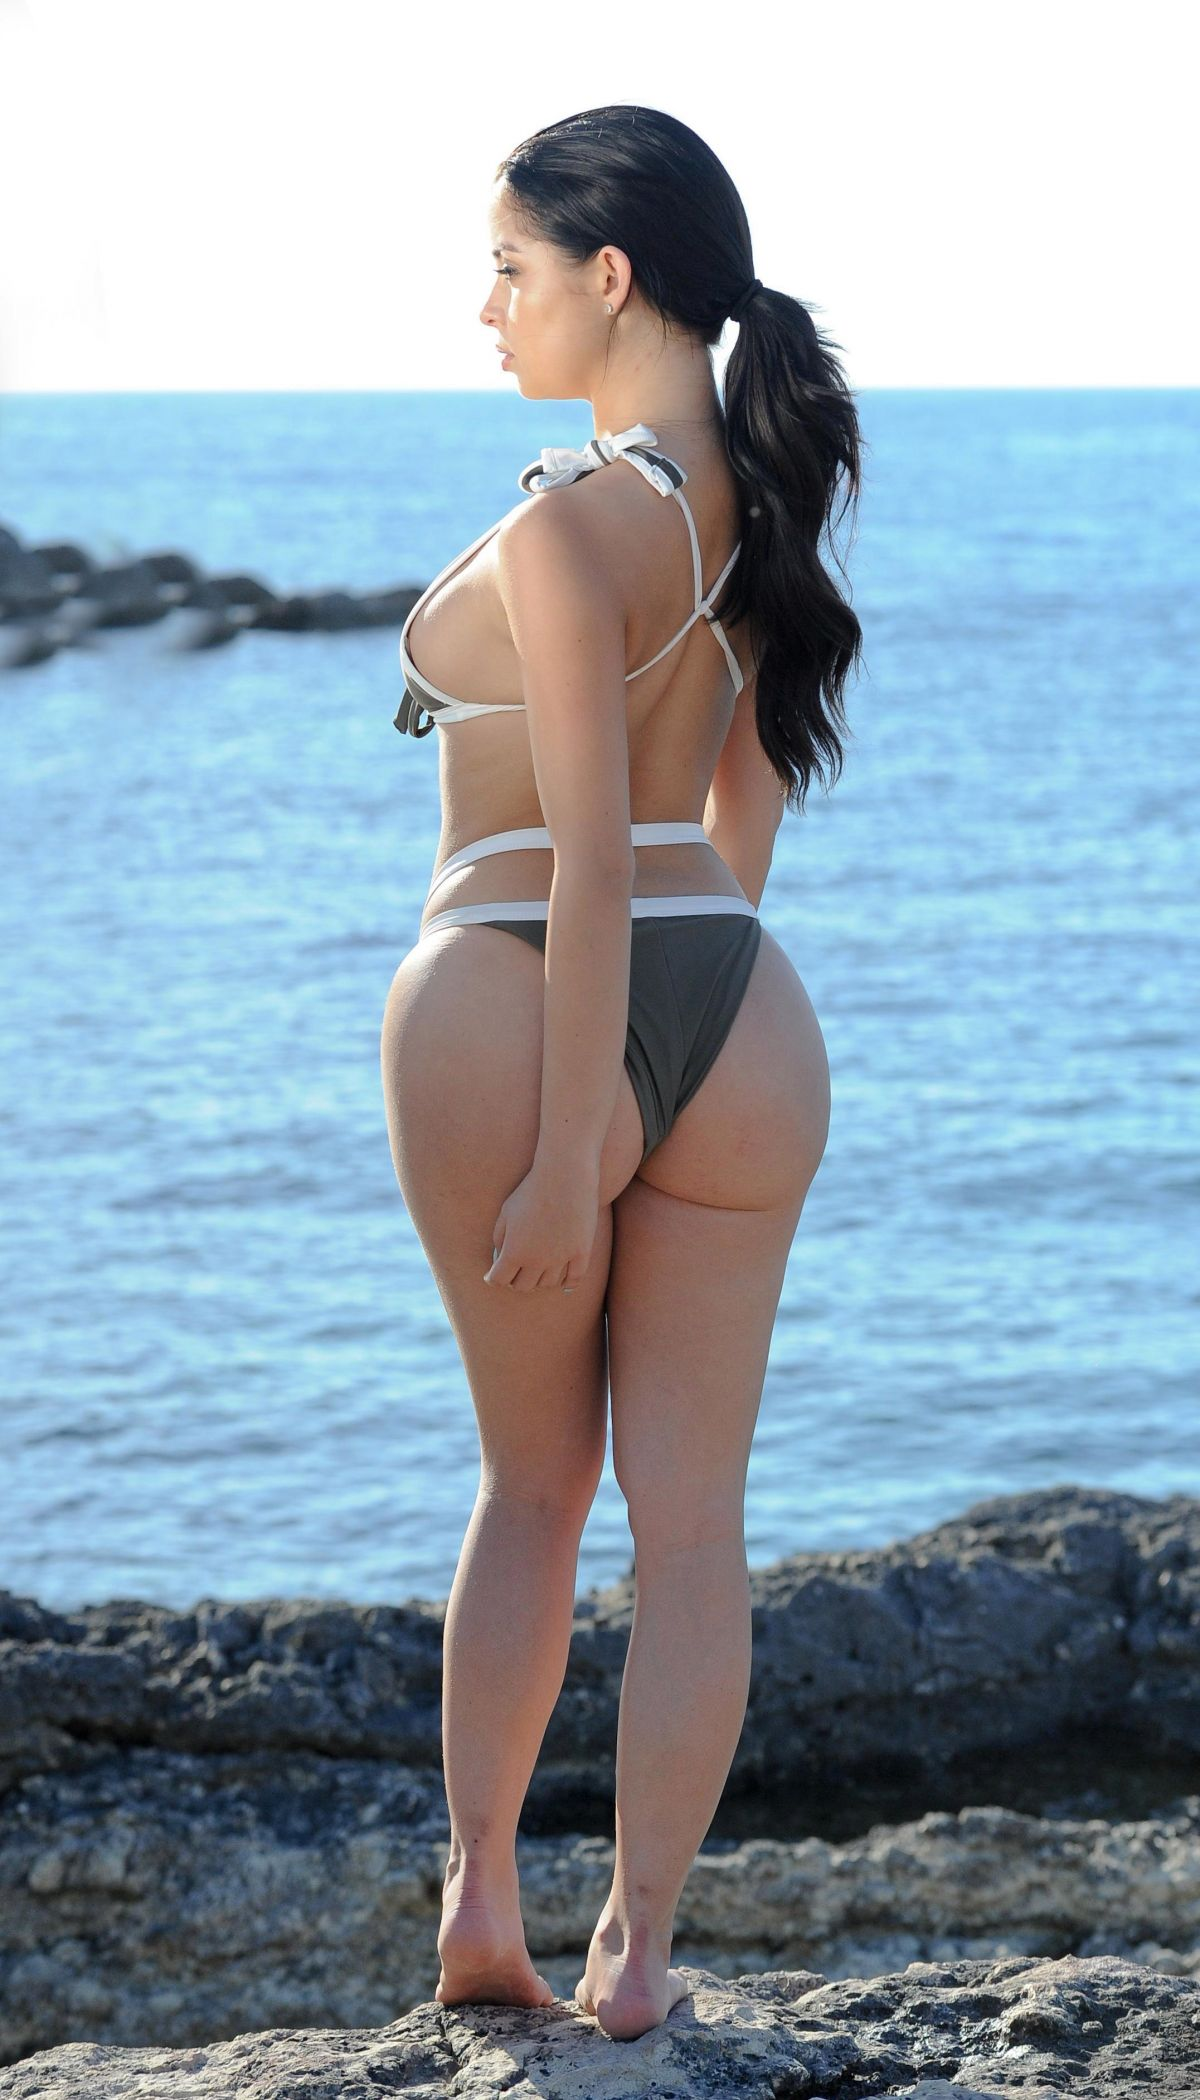 Demi Rose in Pink Bikini at a Beach in Cape Verde Pic 14 of 35